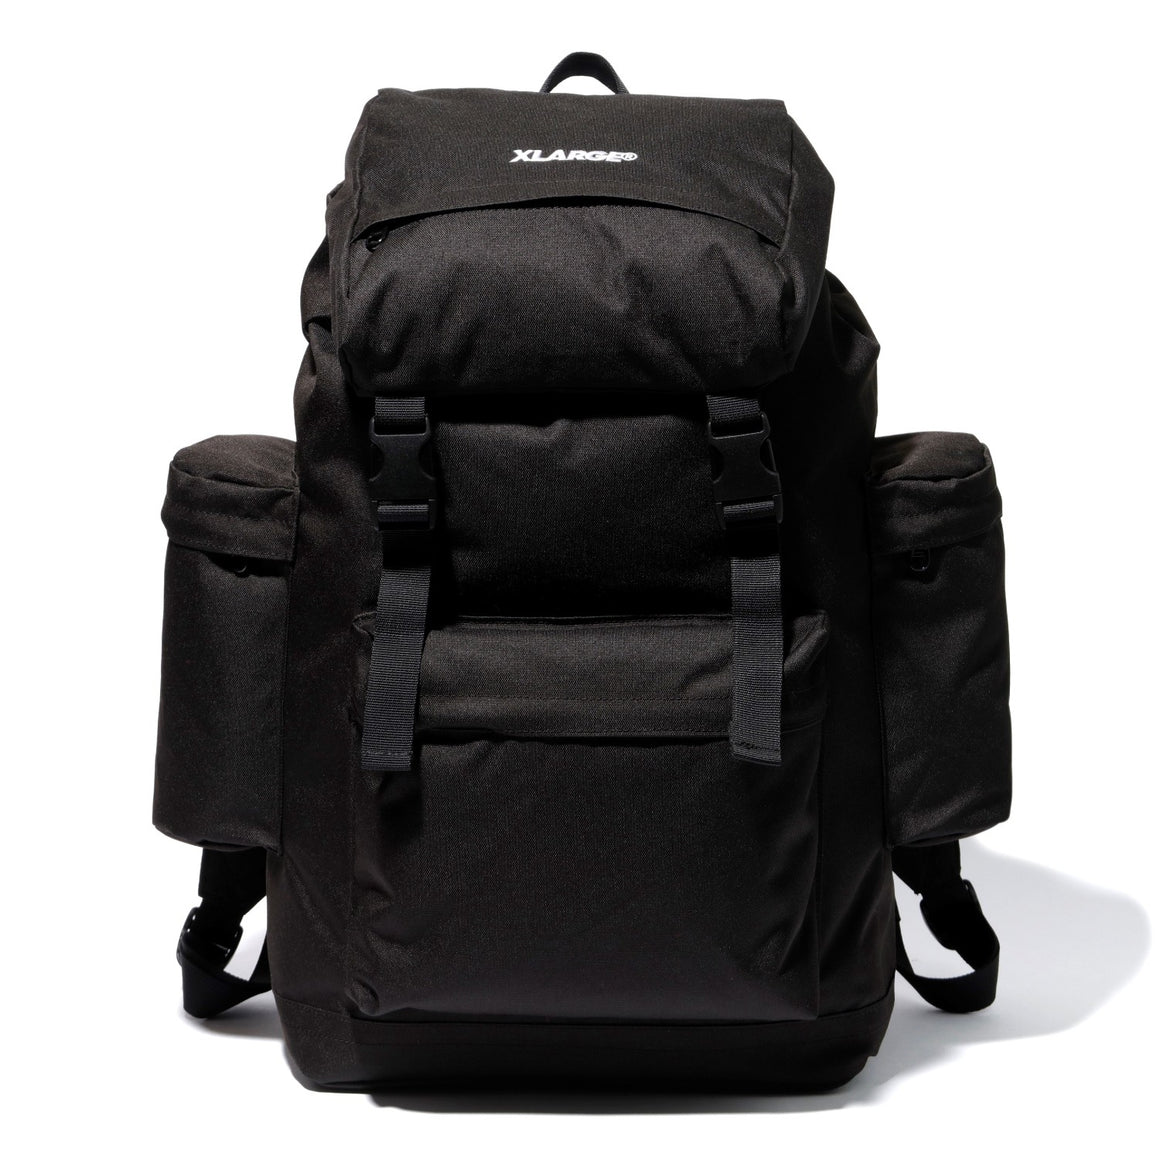 EMBROIDERY STANDARD LOGO BACKPACK